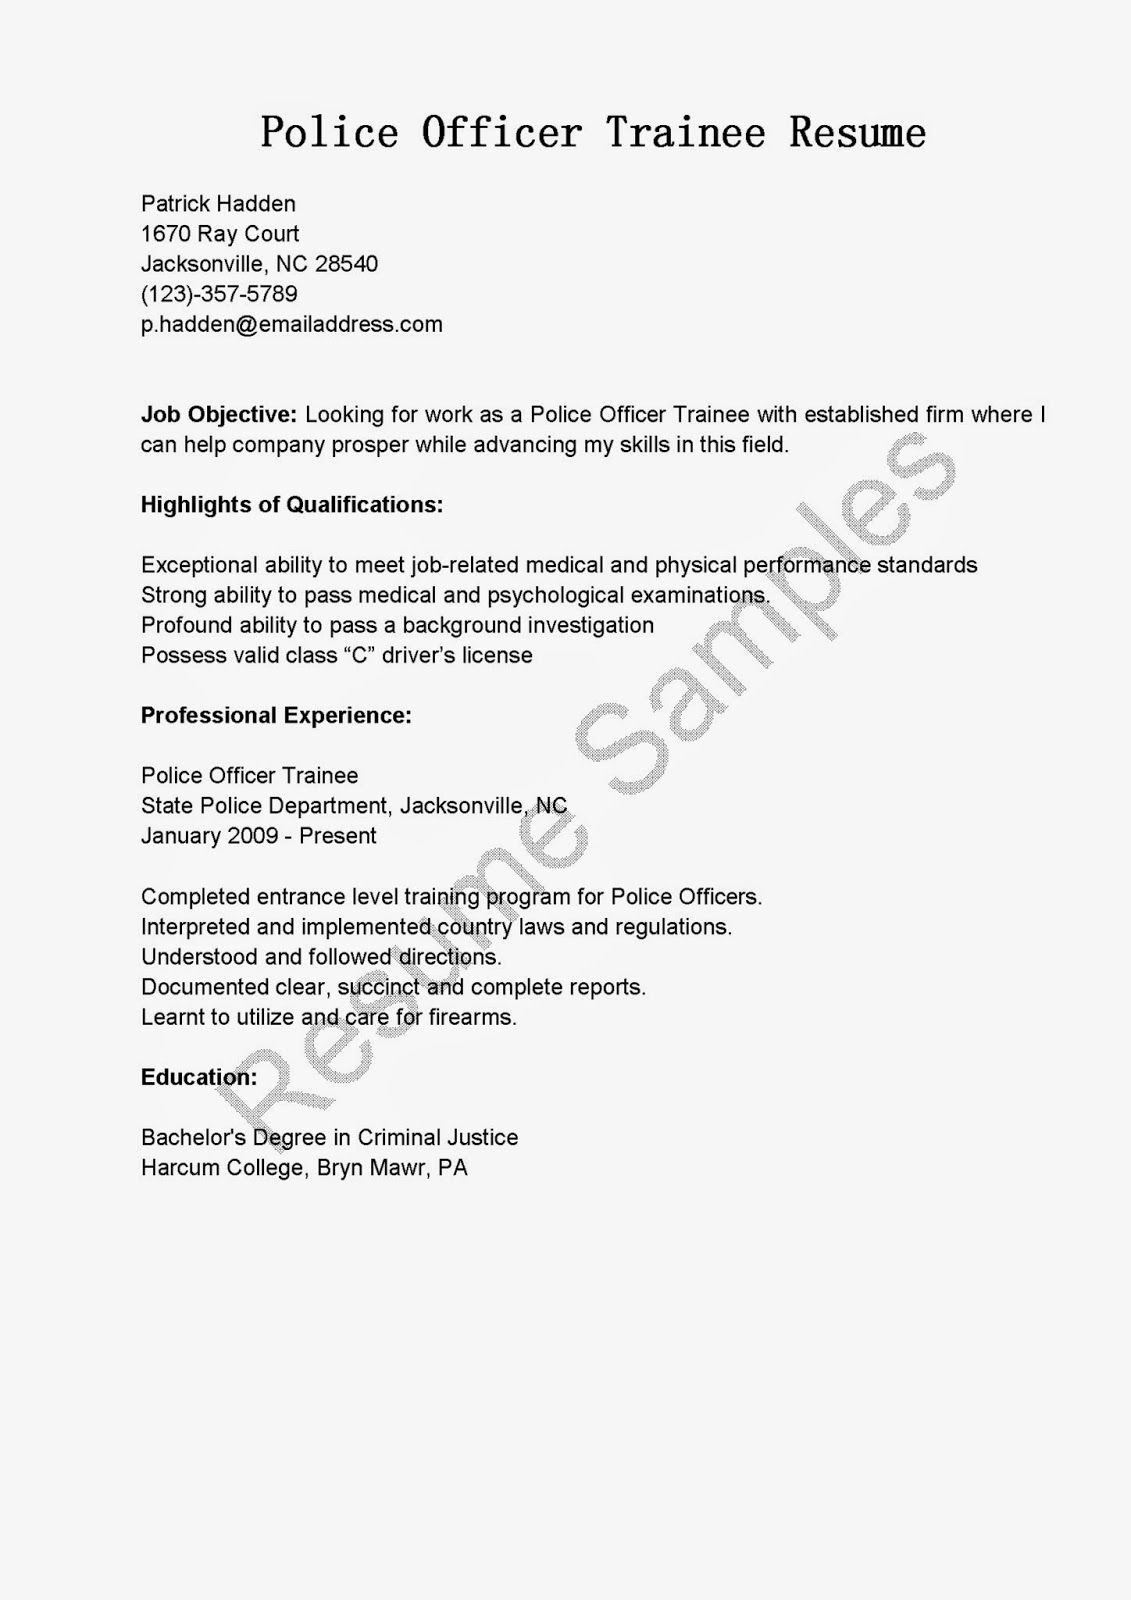 Police Officer Resume Examples Resume Samples Police Officer Trainee Resume Sample